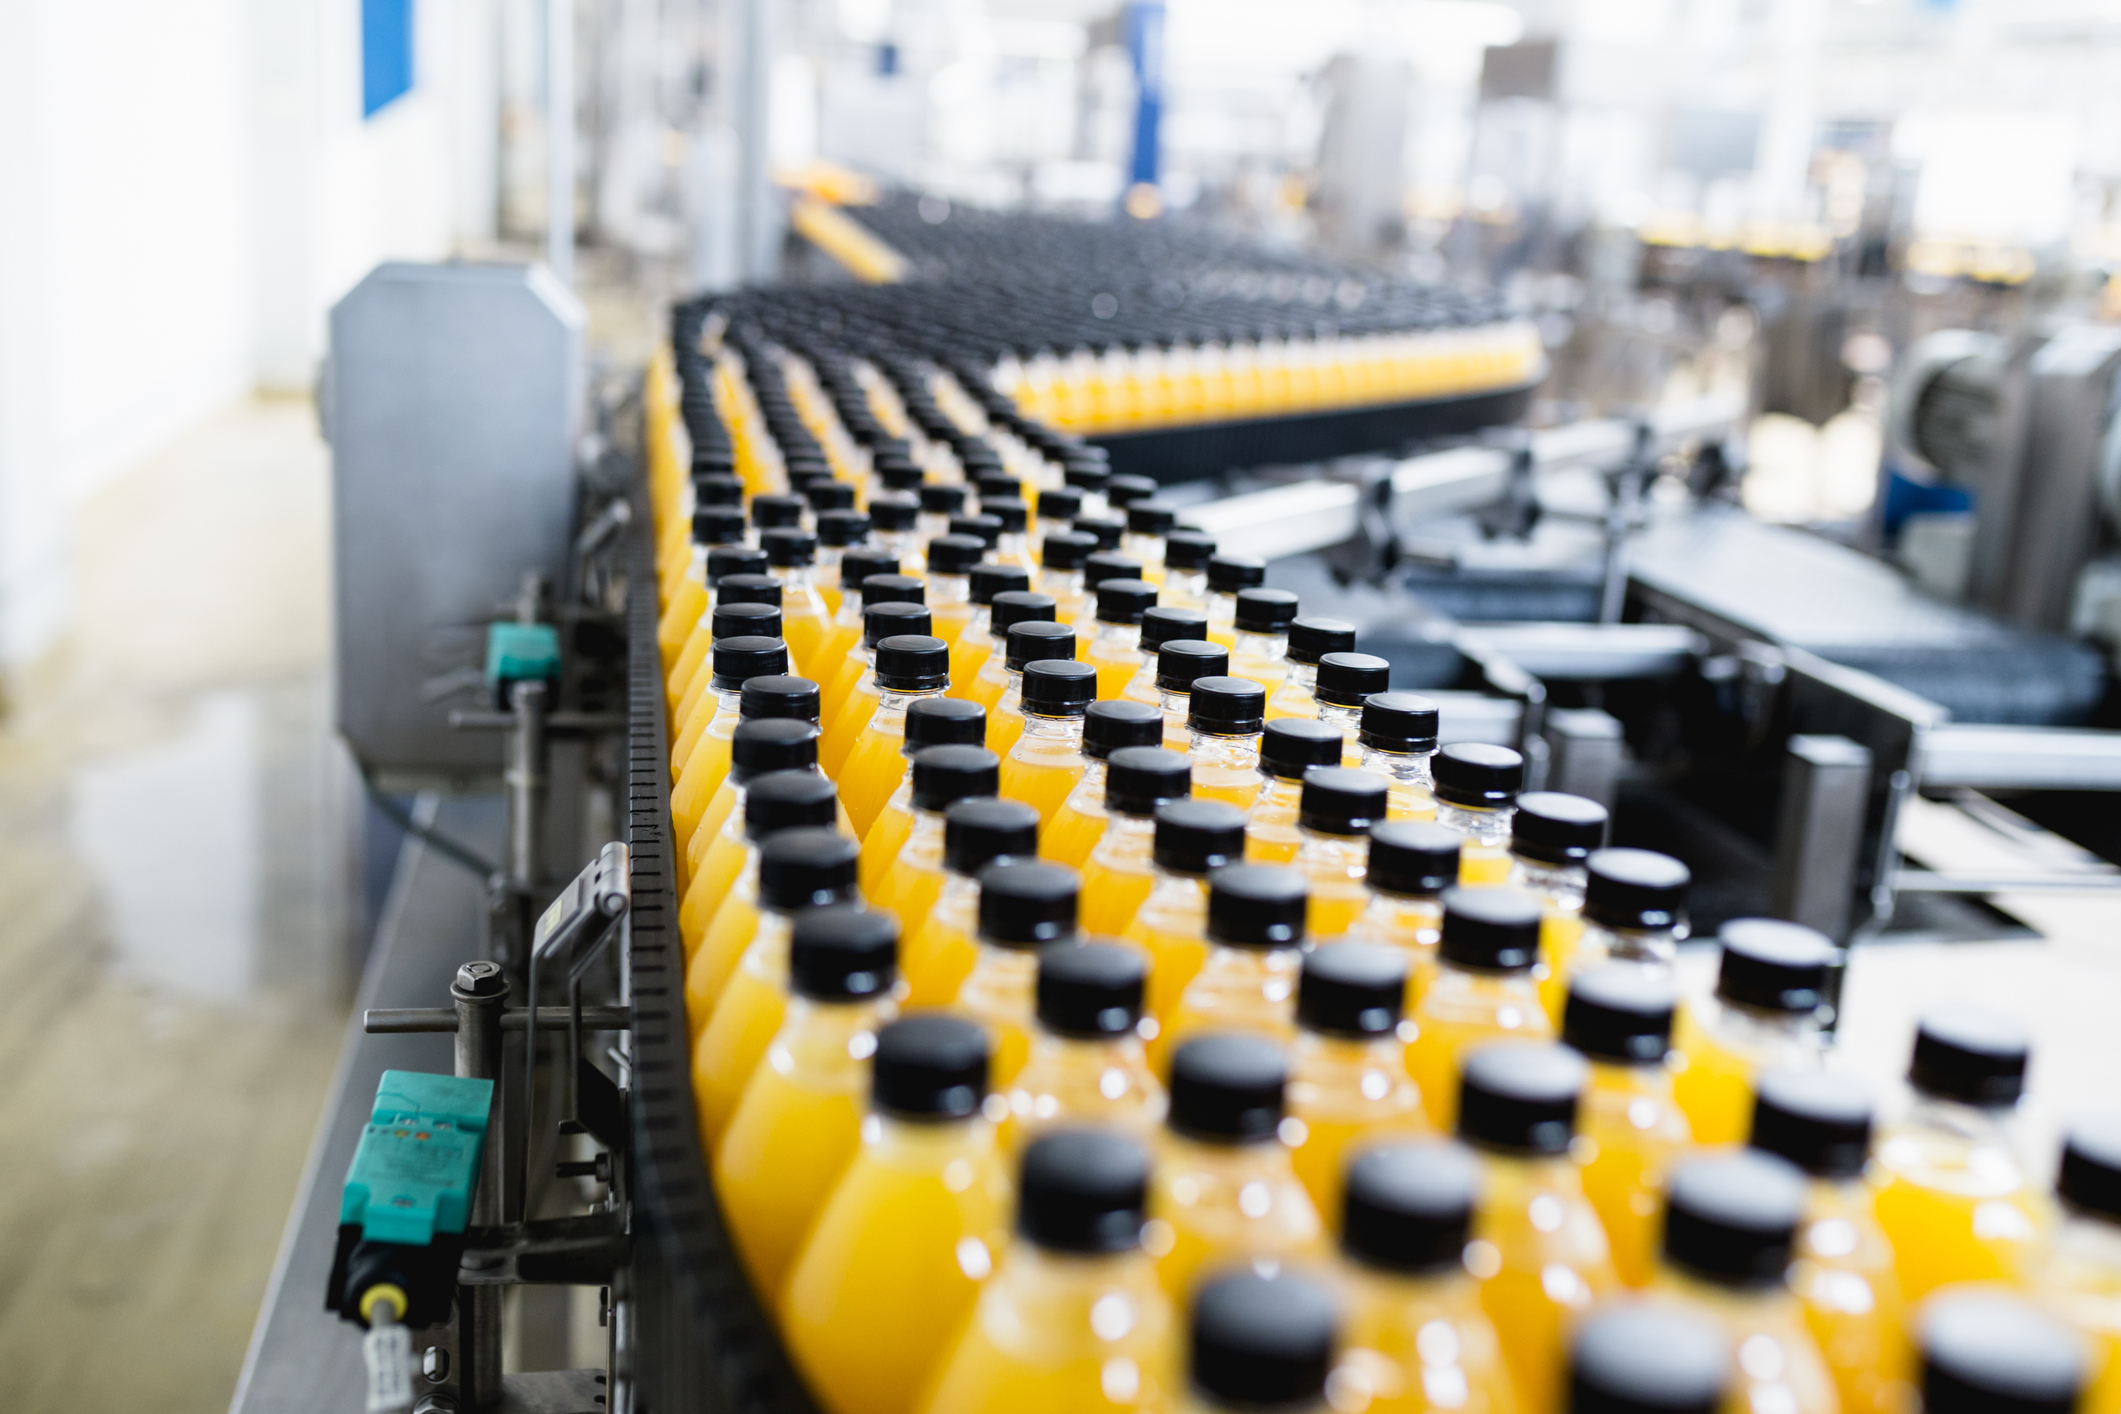 Global Manufacturer Secures IIoT Networks with Segmentation - After completing a major security assessment, a global food and beverage manufacturer uncovered an opportunity to further strengthen its security posture. IT leadership turned to Burwood Group to design and implement a network segmentation solution that would further mitigate risks to the company's connected office and manufacturing plants.